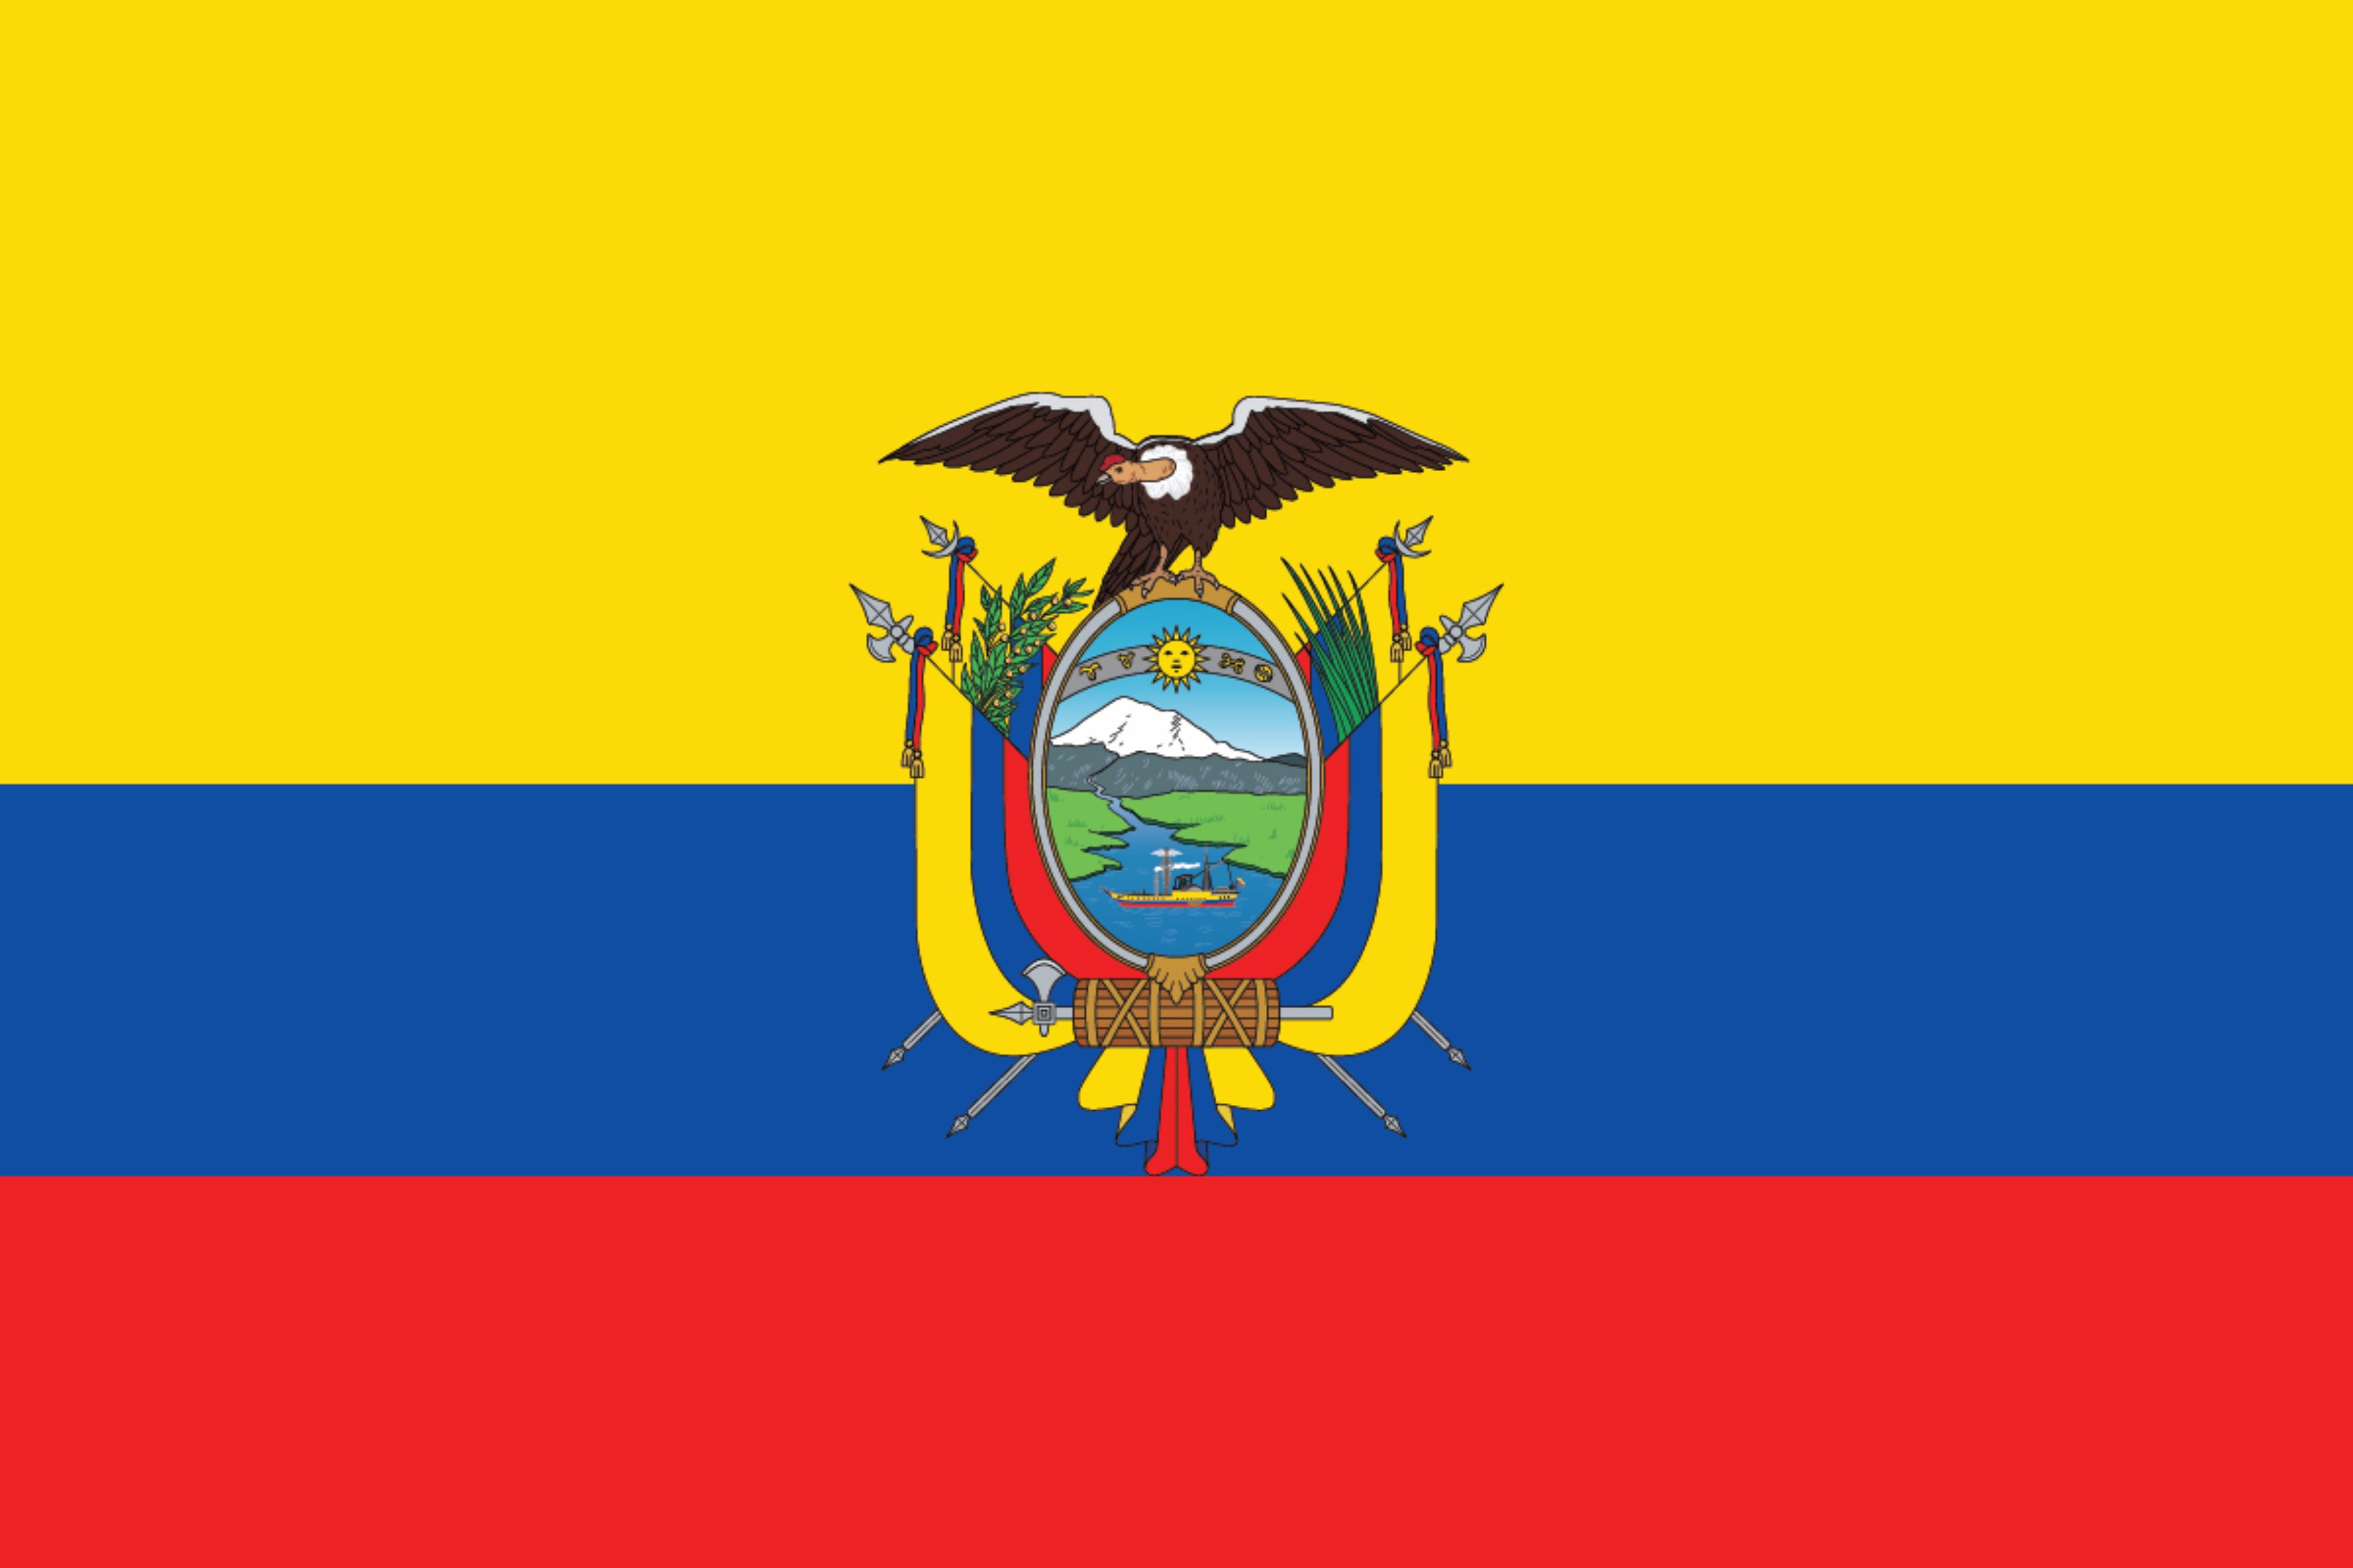 The flag of Ecuador.